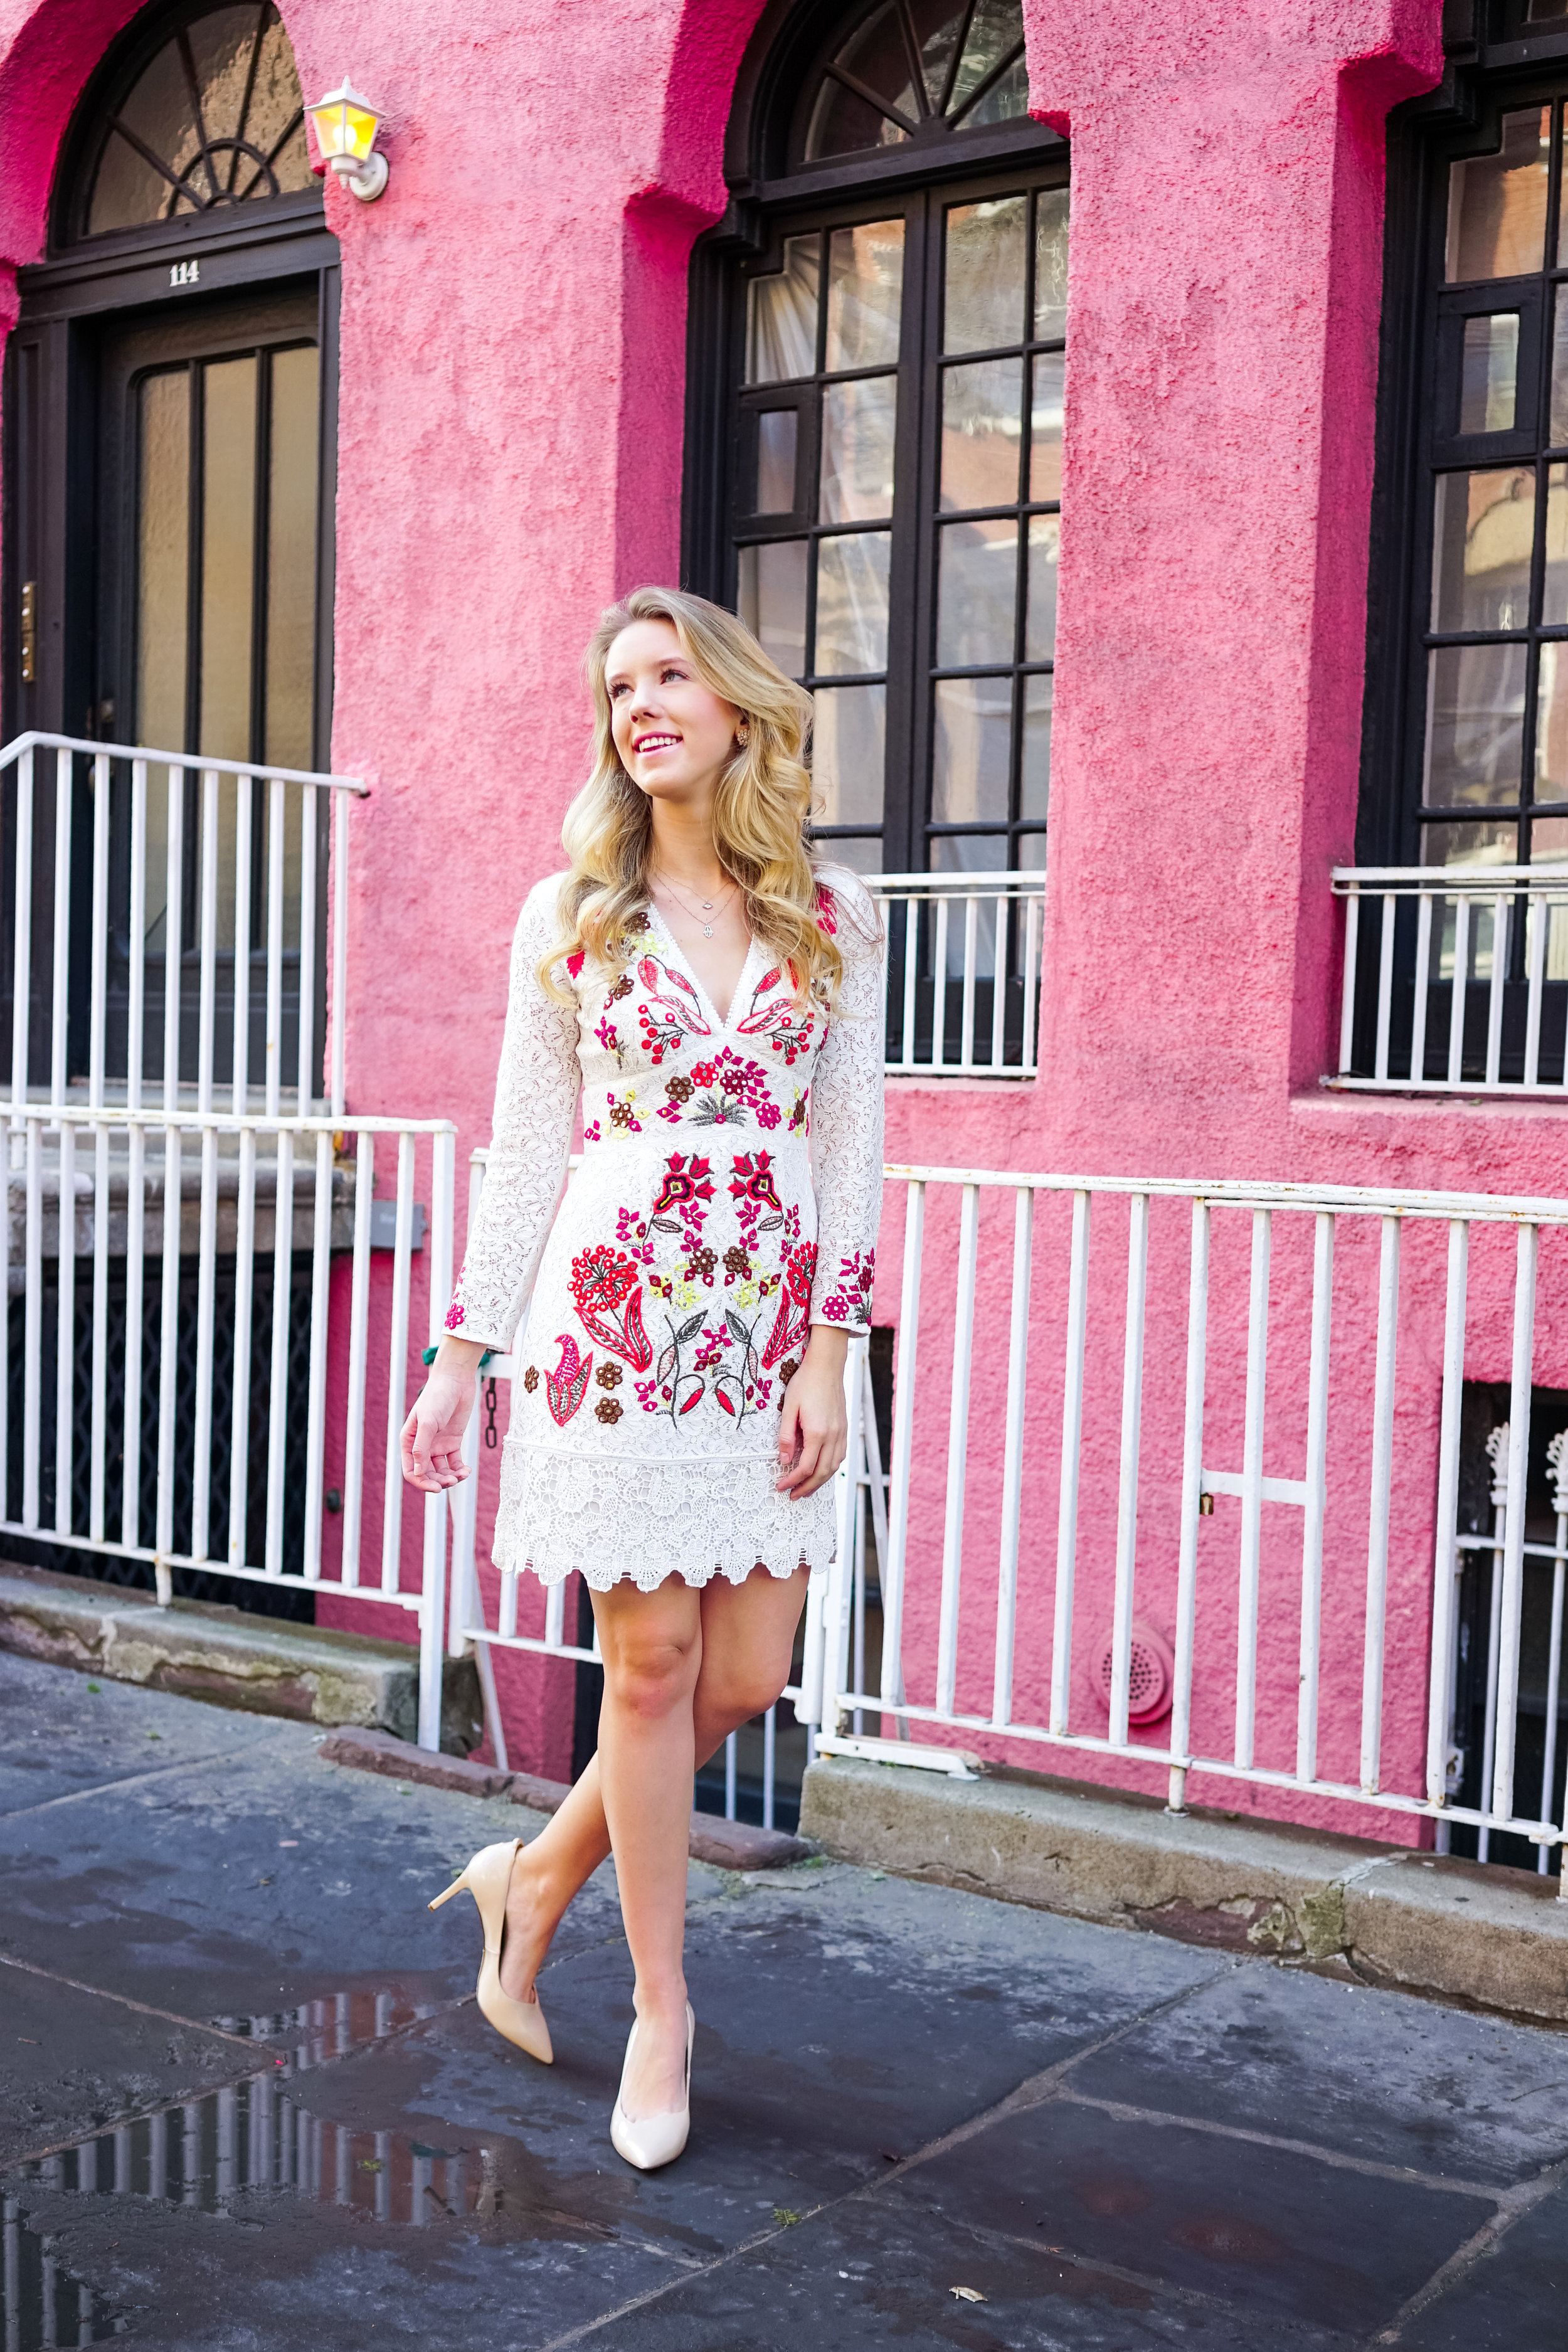 West Village NYC Embroidered Lace Outfit-22.jpg